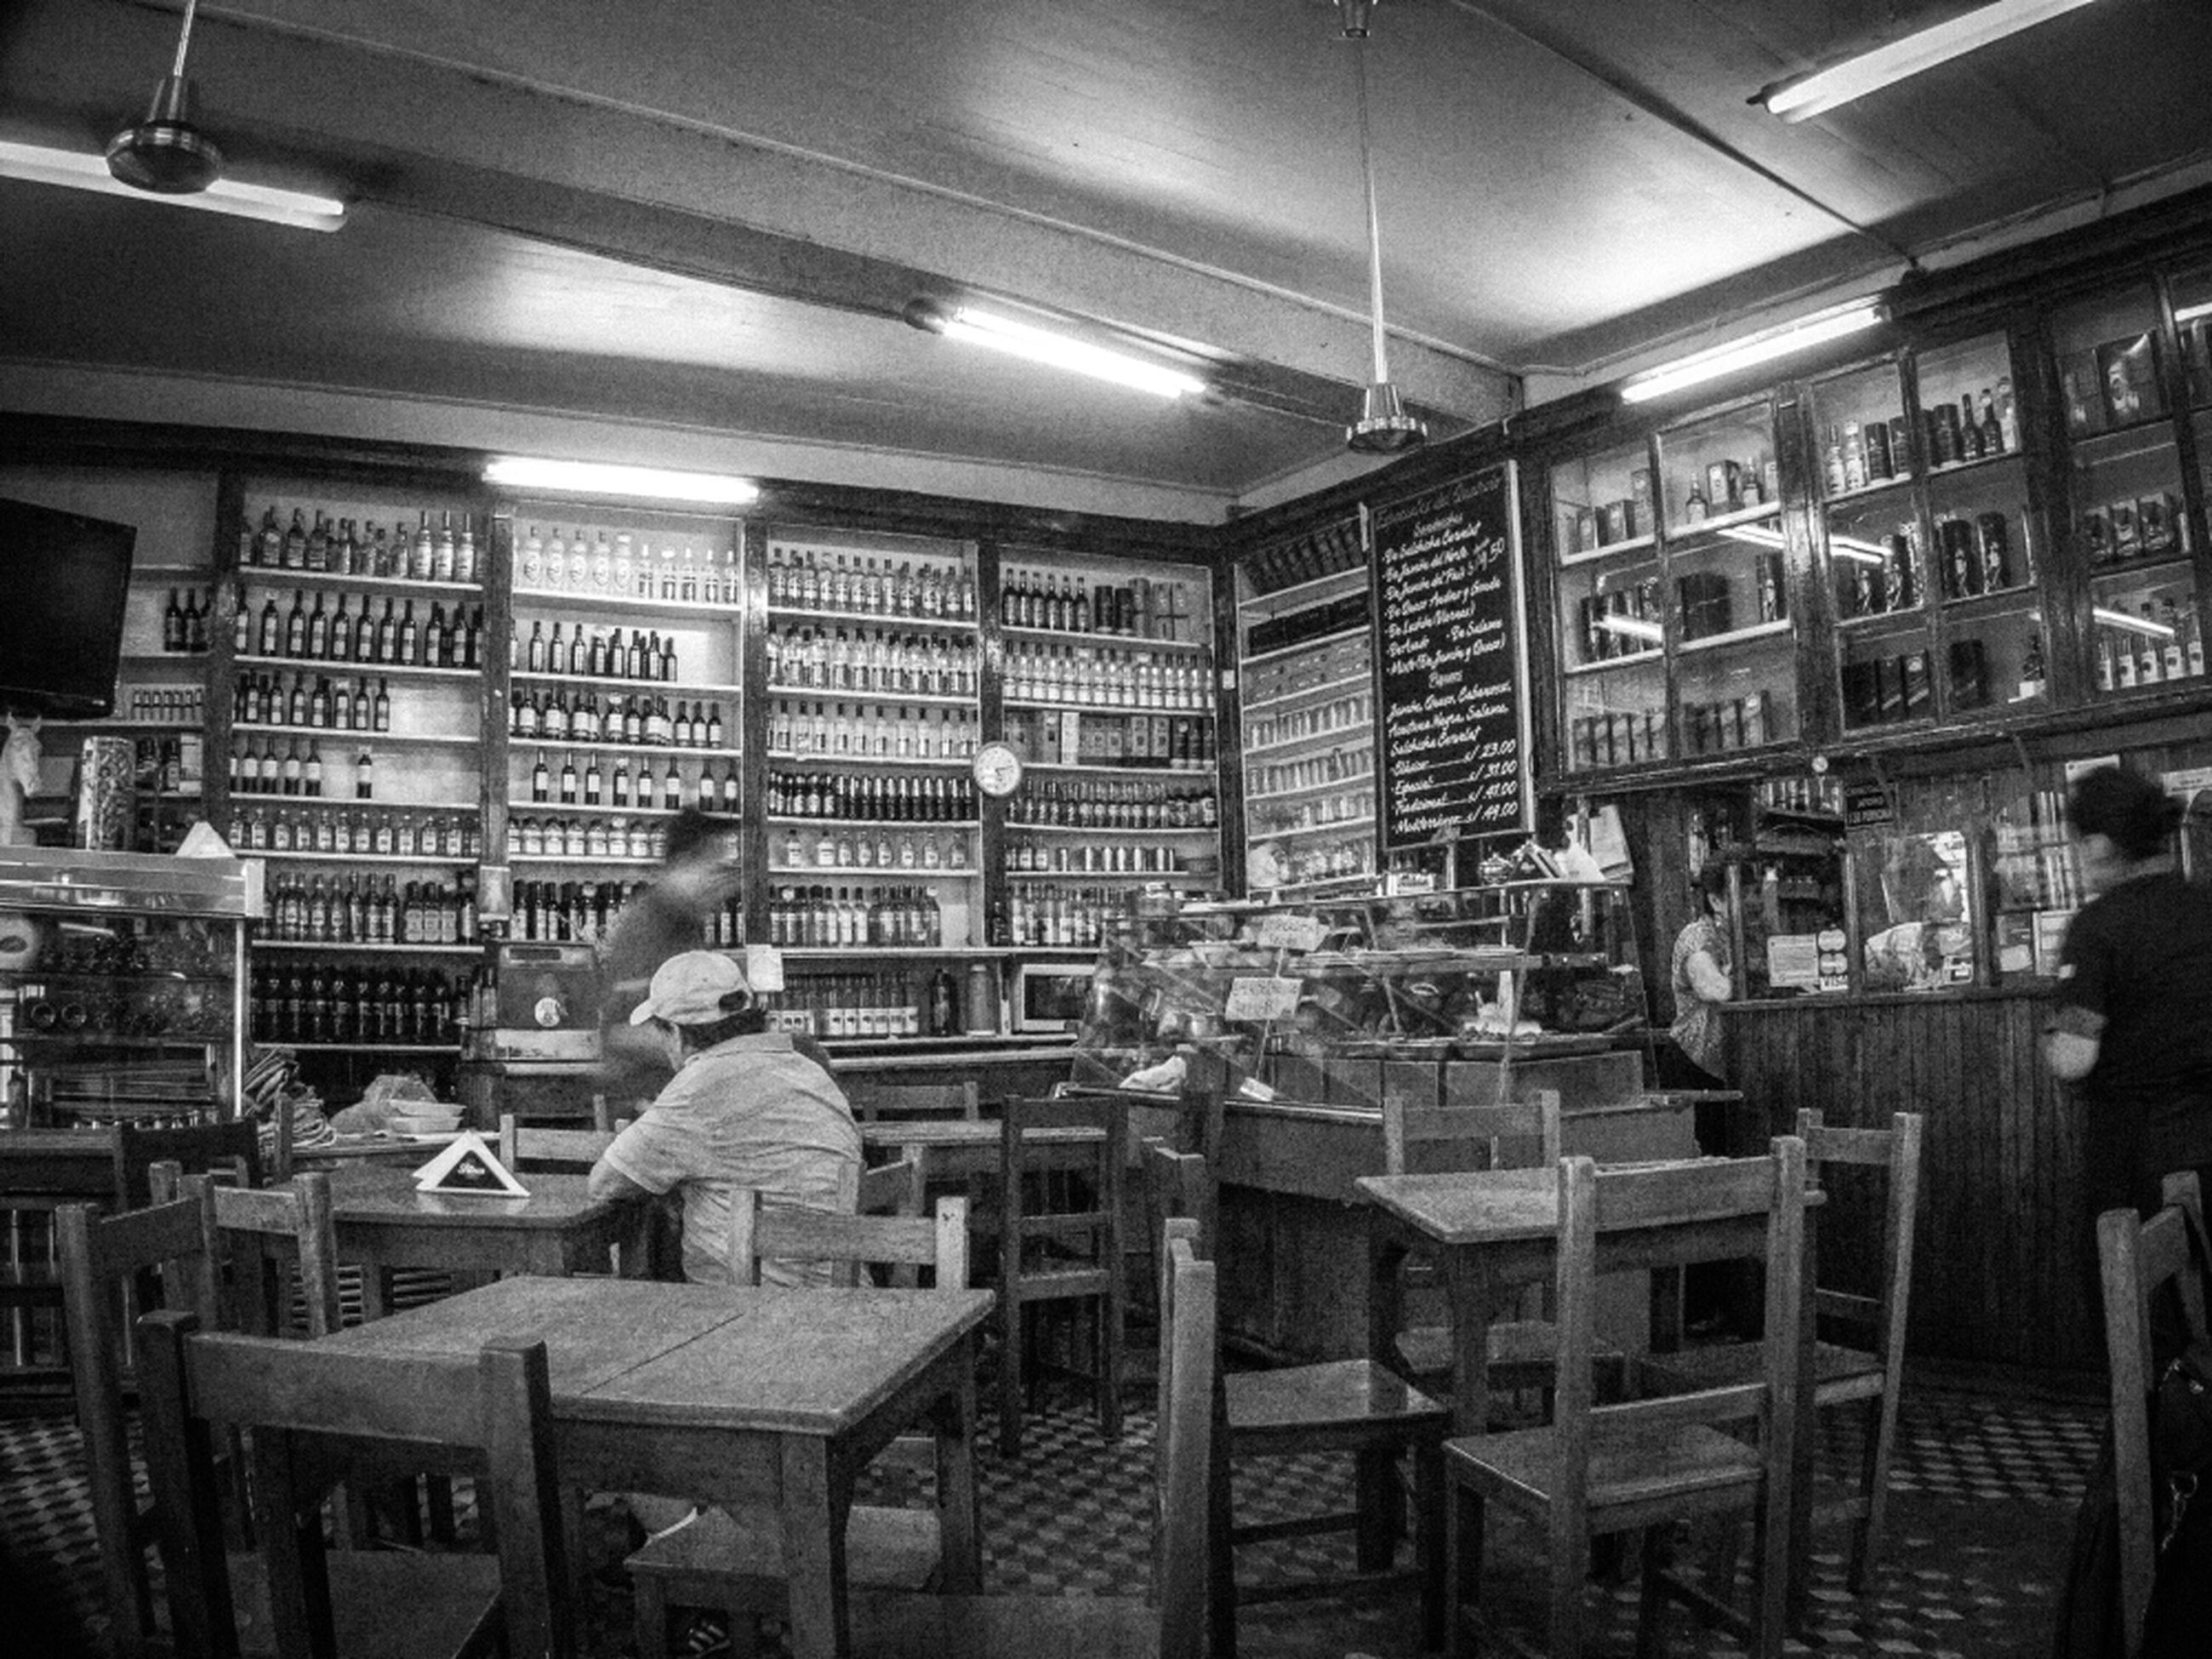 indoors, interior, chair, illuminated, empty, ceiling, store, window, absence, architecture, built structure, shelf, lighting equipment, restaurant, retail, incidental people, arrangement, shop, hospital, table